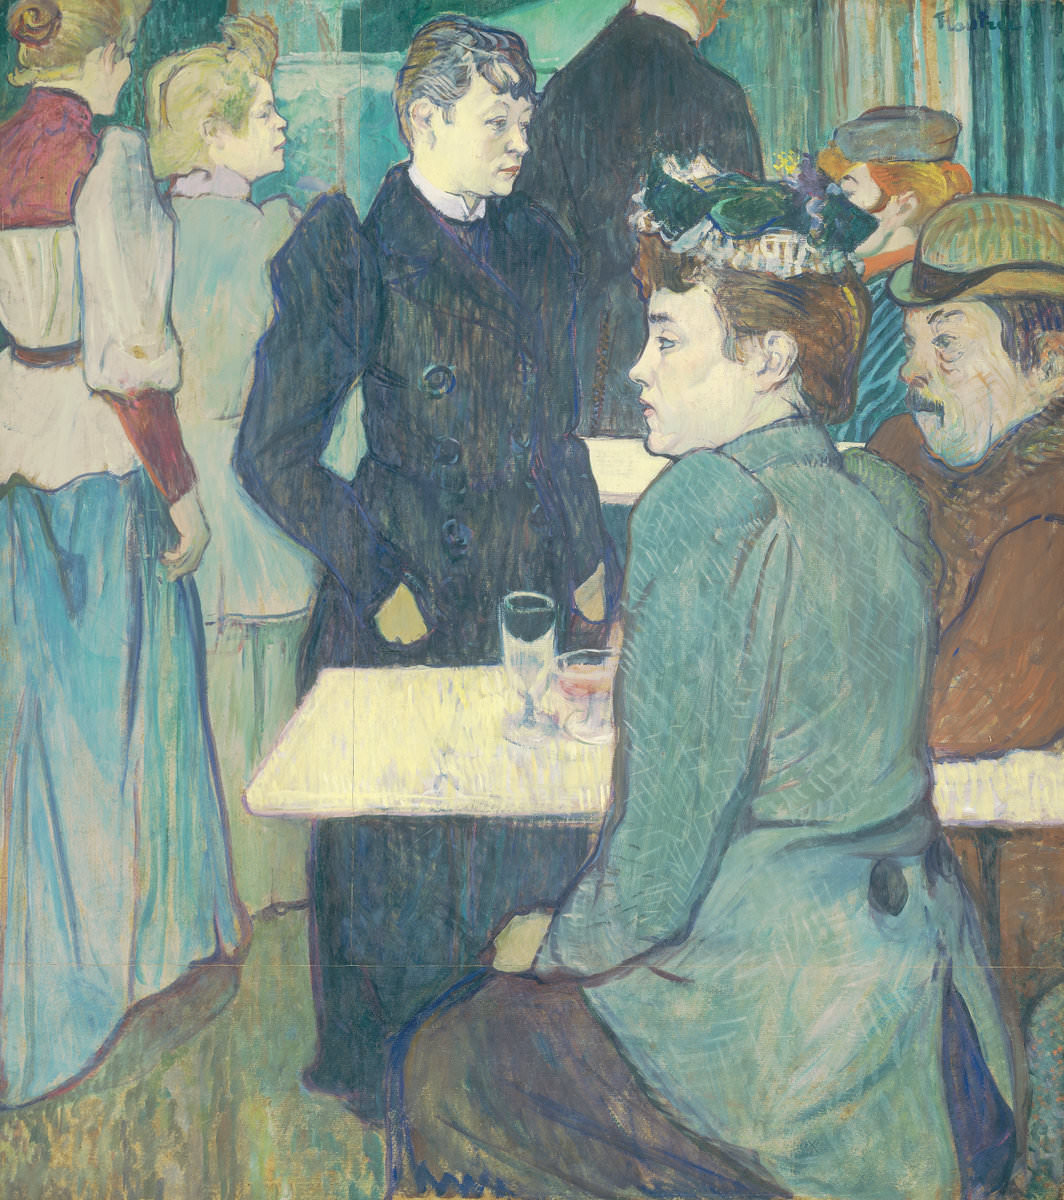 Fig. 10 -A esquina en el Moulin de La Galette, Henri de Toulouse-Lautrec, 1892. National Gallery of Art, Washington. Colección de Chester Dale.